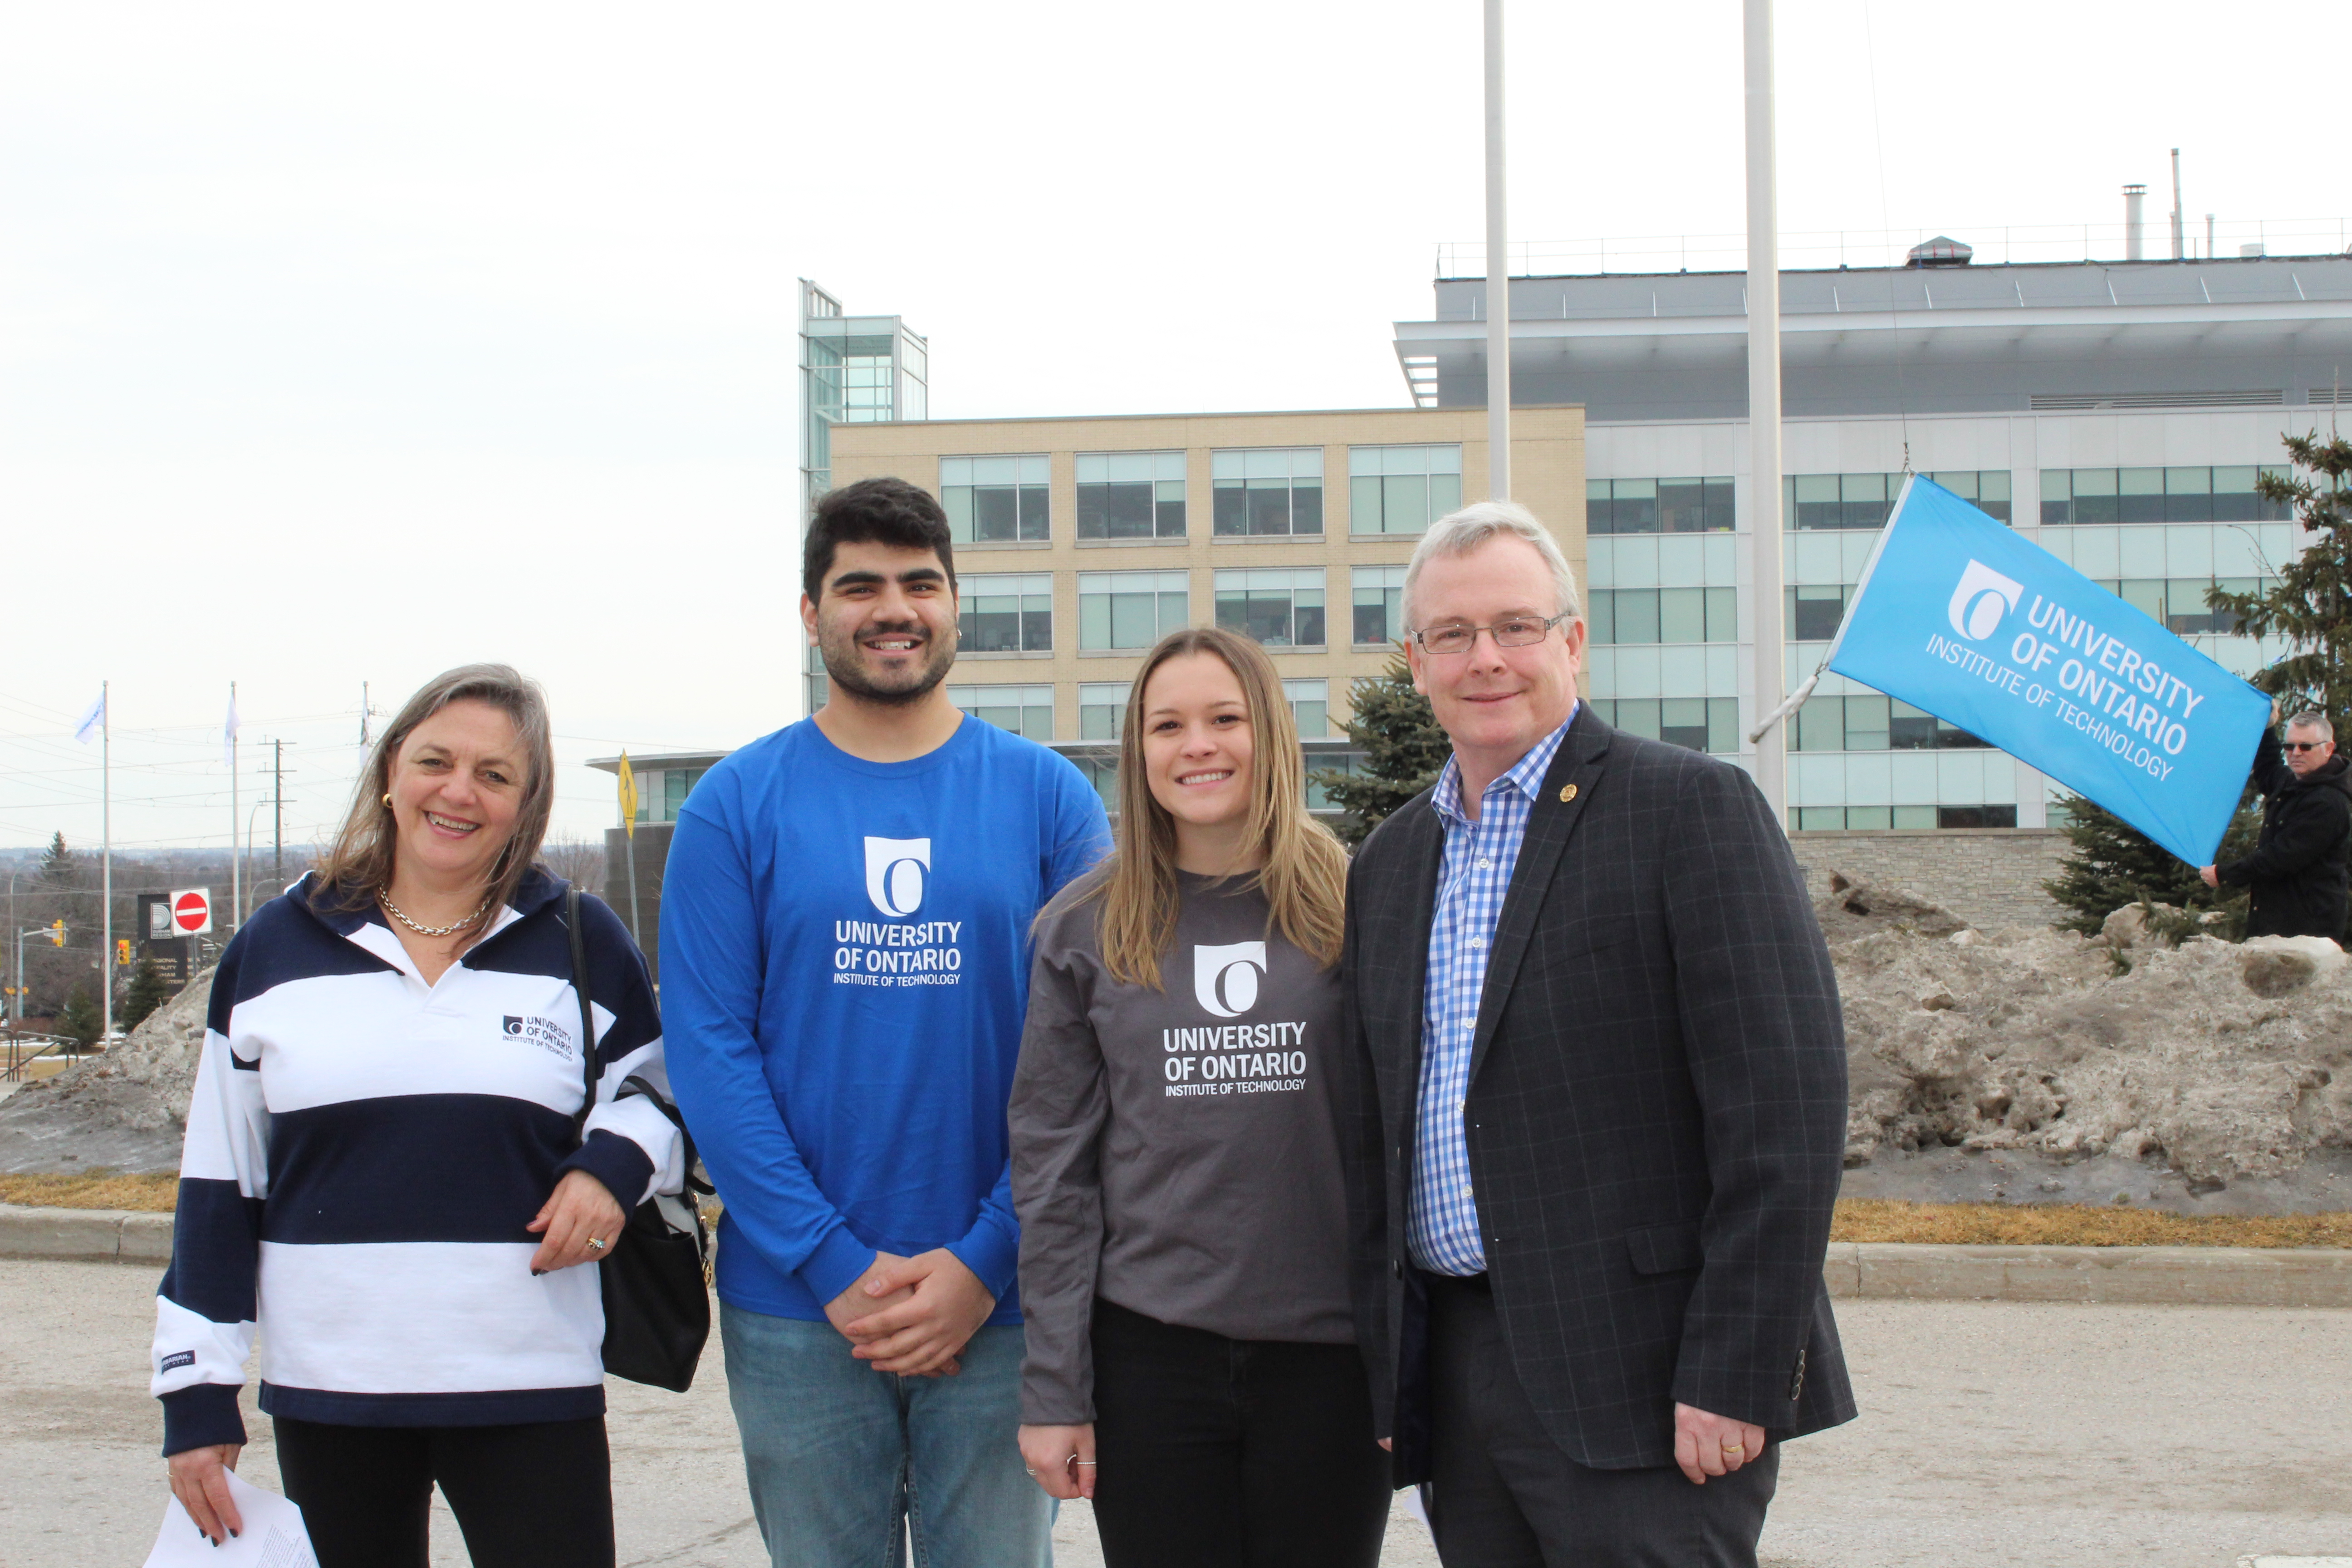 Susan McGovern, Moneel Lad, Samantha Pruden and Regional Chair John Henry raise the university's flag at the Region of Durham office.